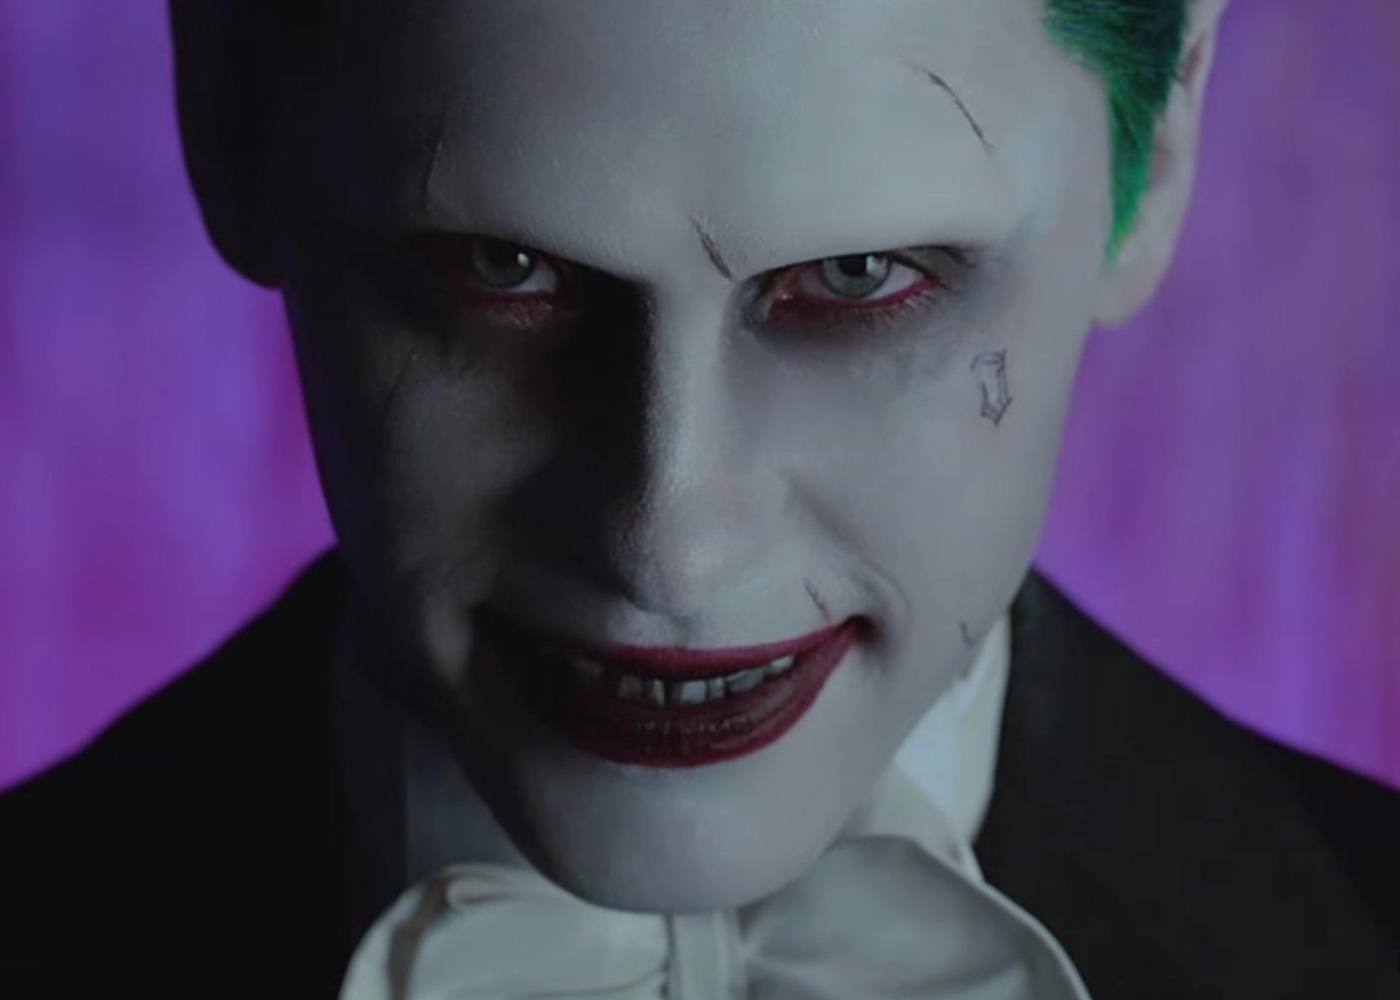 Suicide Squad: Jared Leto is All for Releasing The Ayer Cut